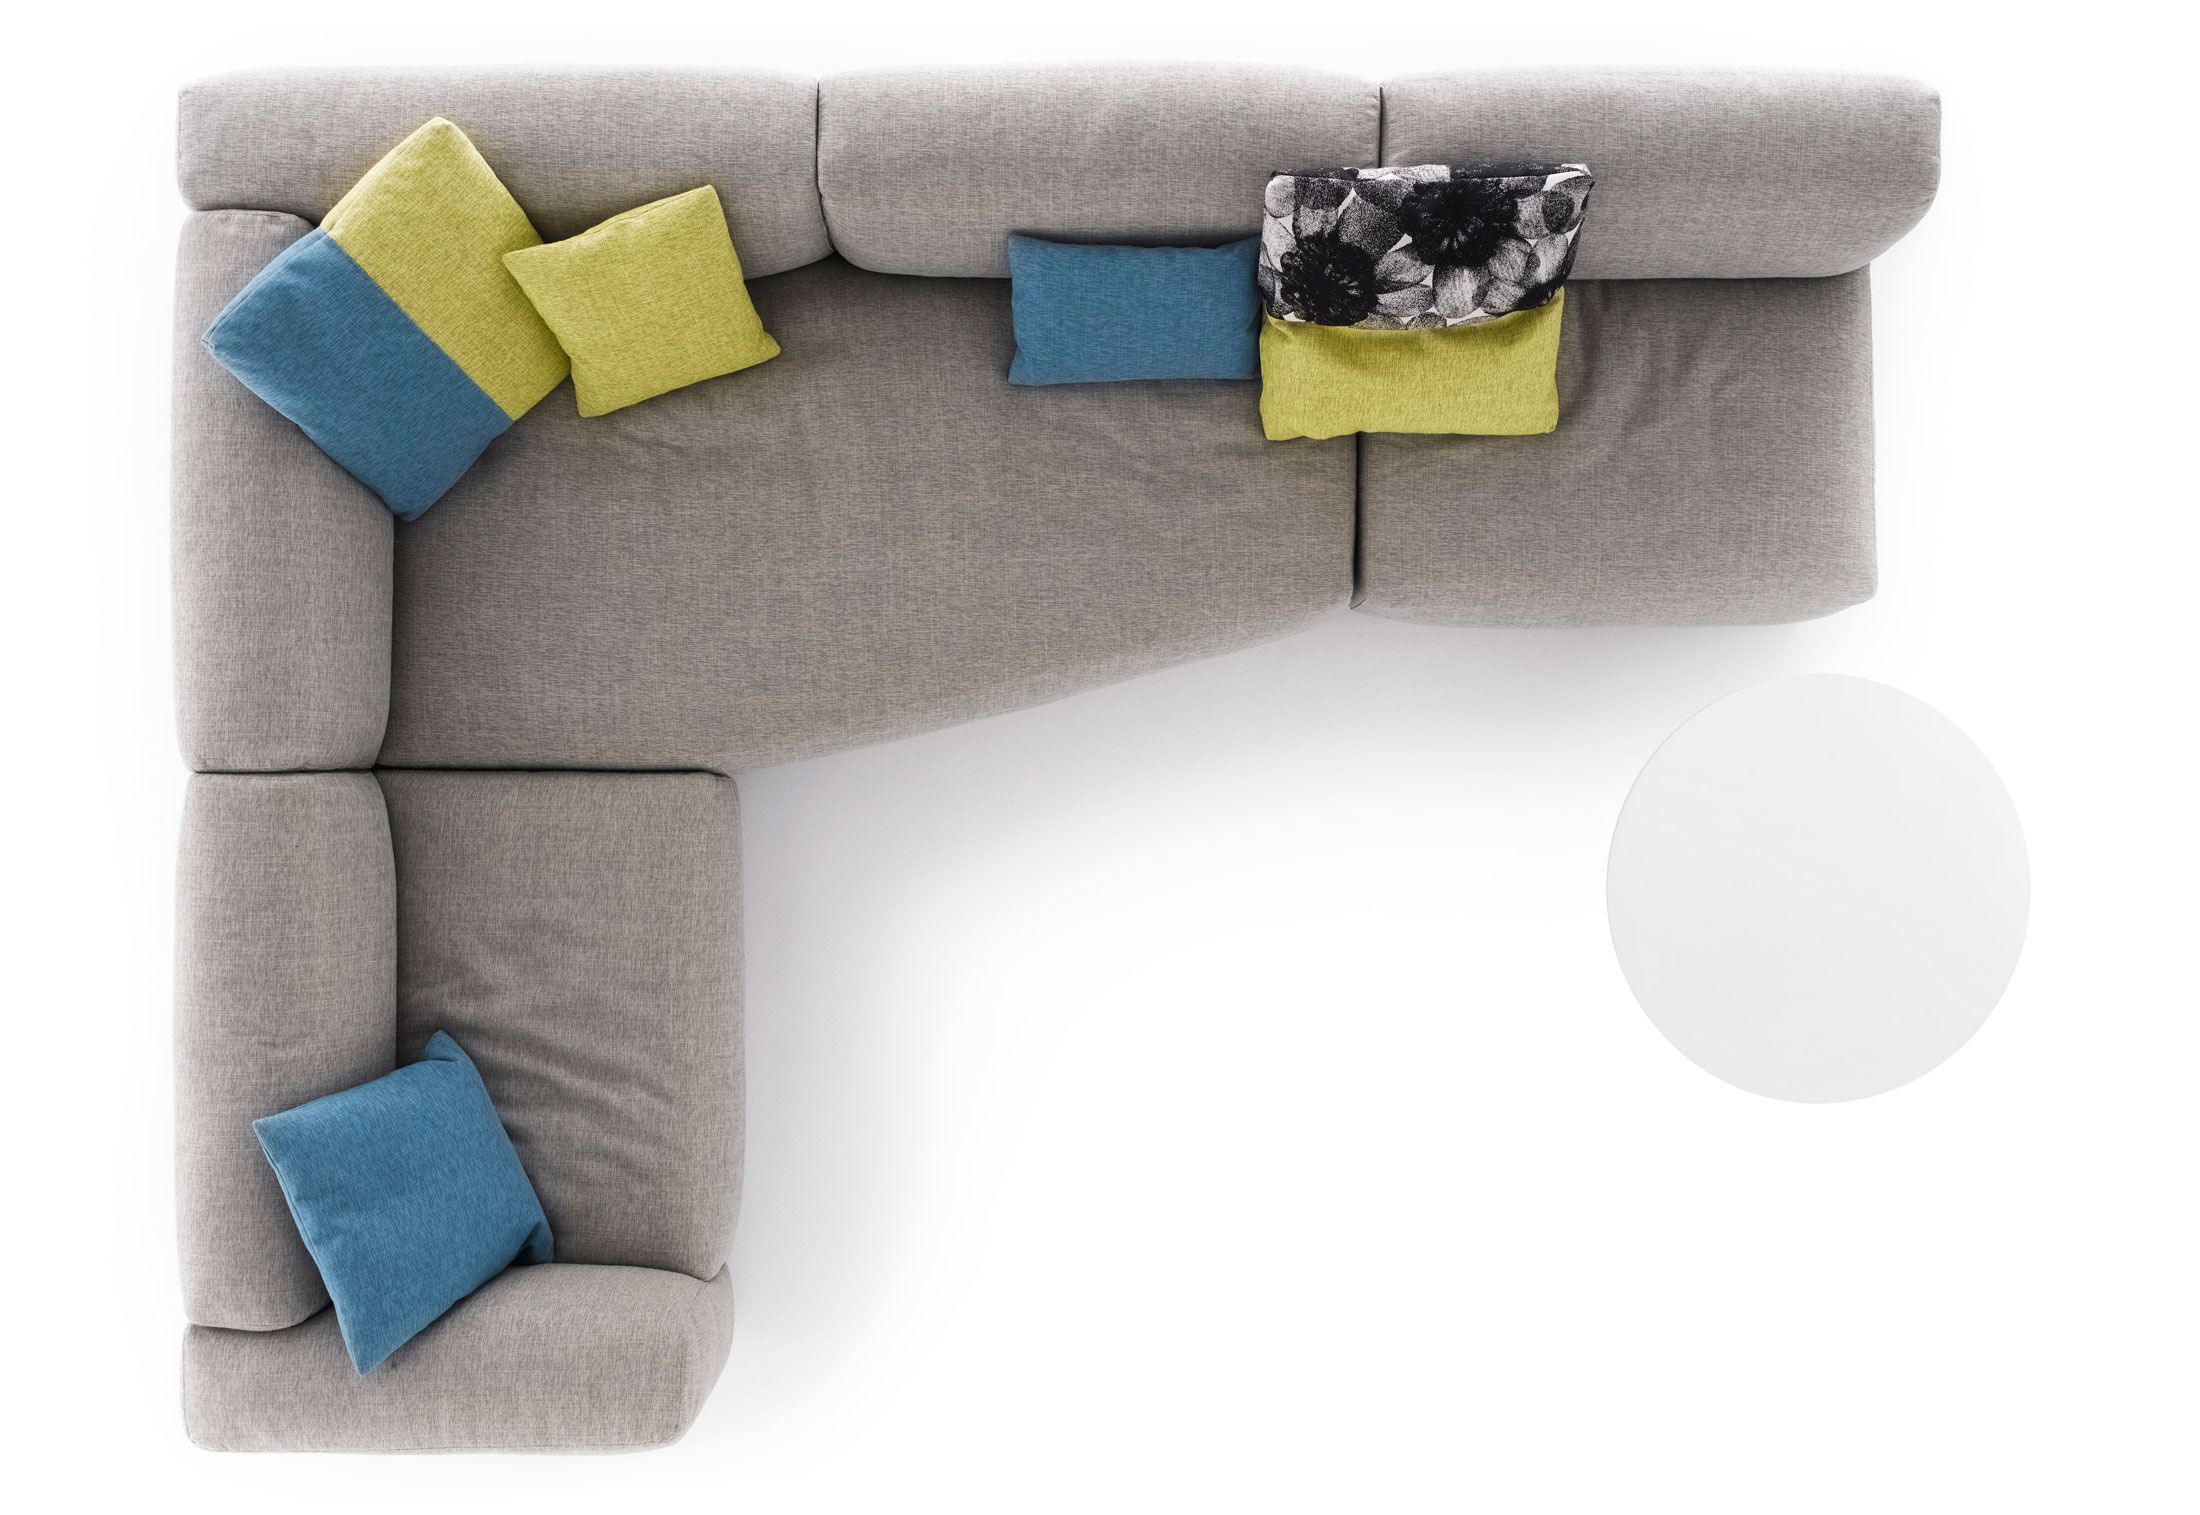 sofa bed cad block free julia cupholder convertible futon white top view italia sofas design at psd plan